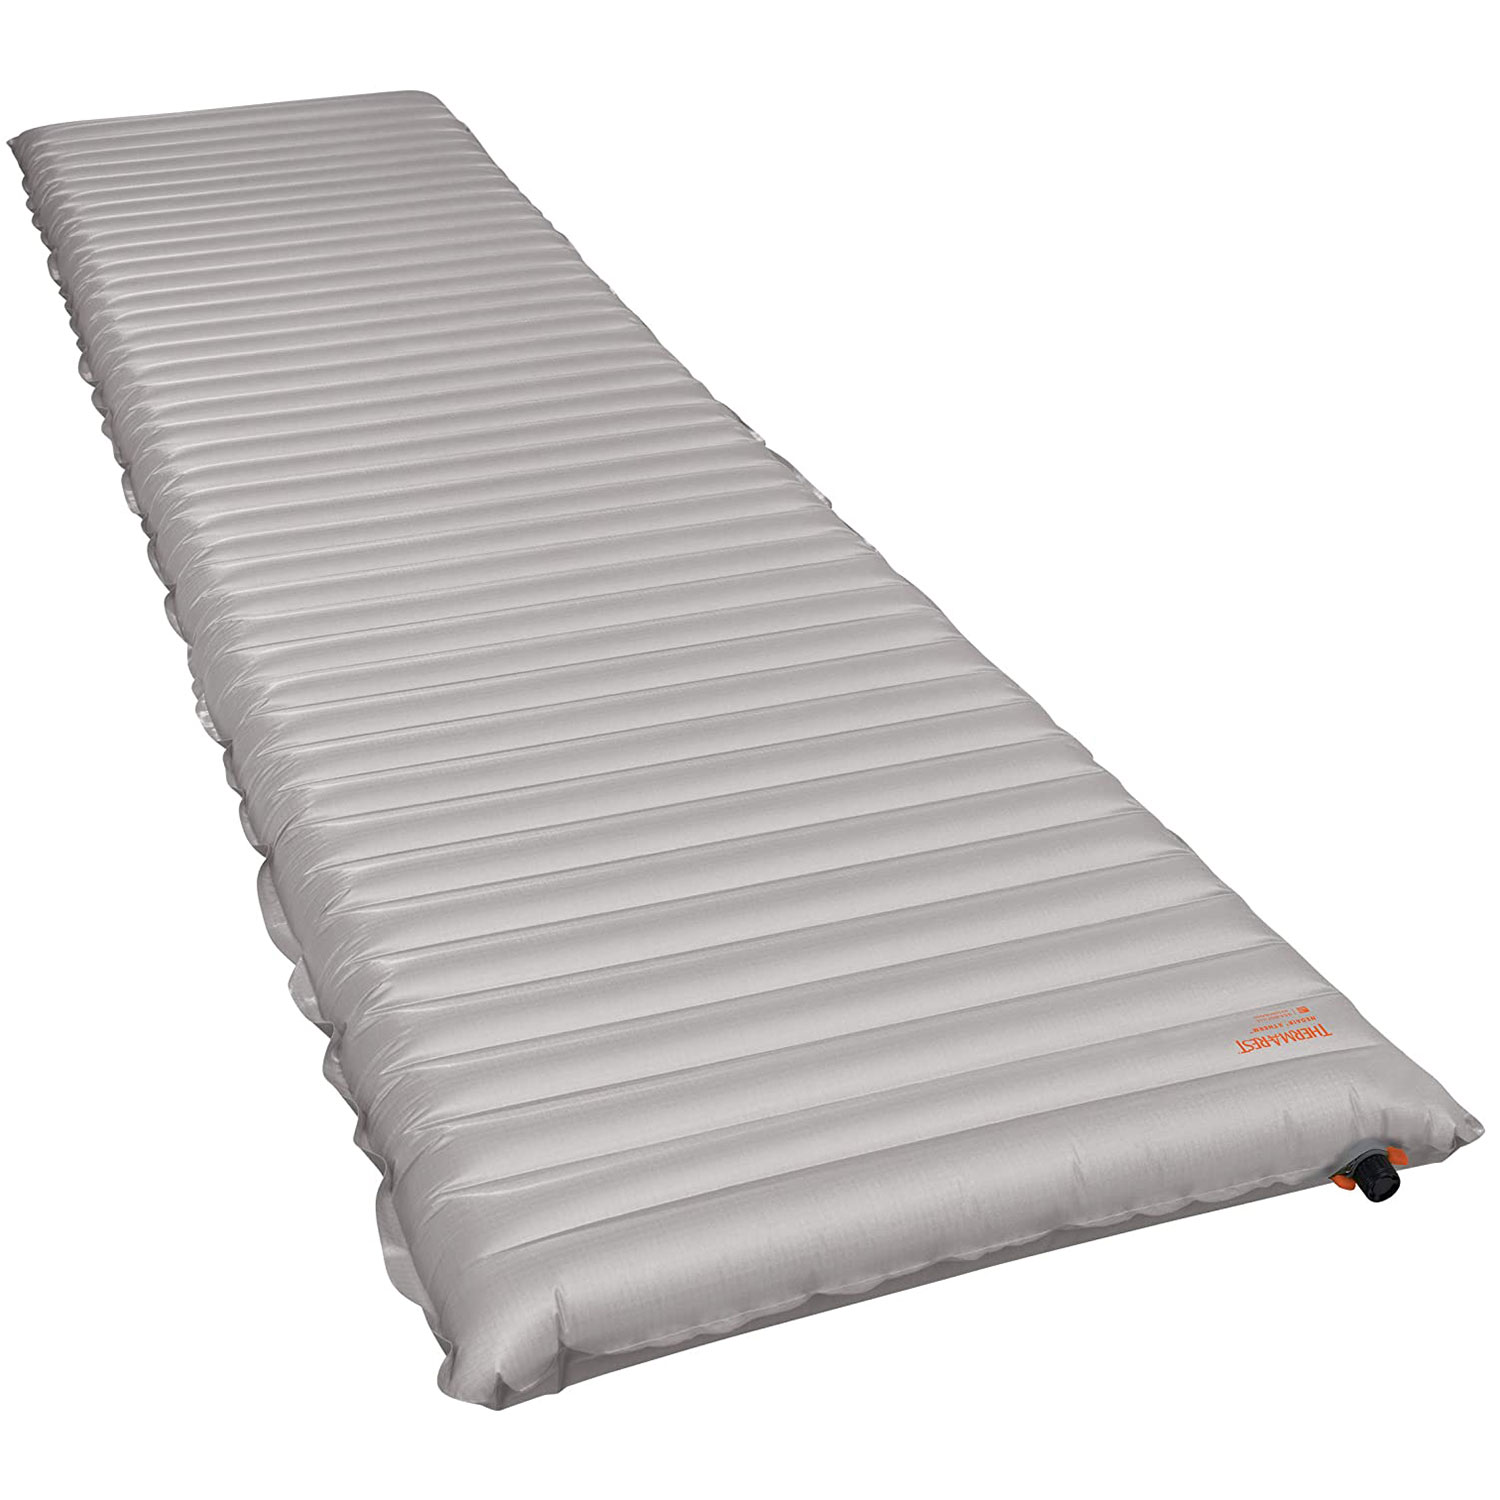 Inflatable Travel Bed Air Mattress